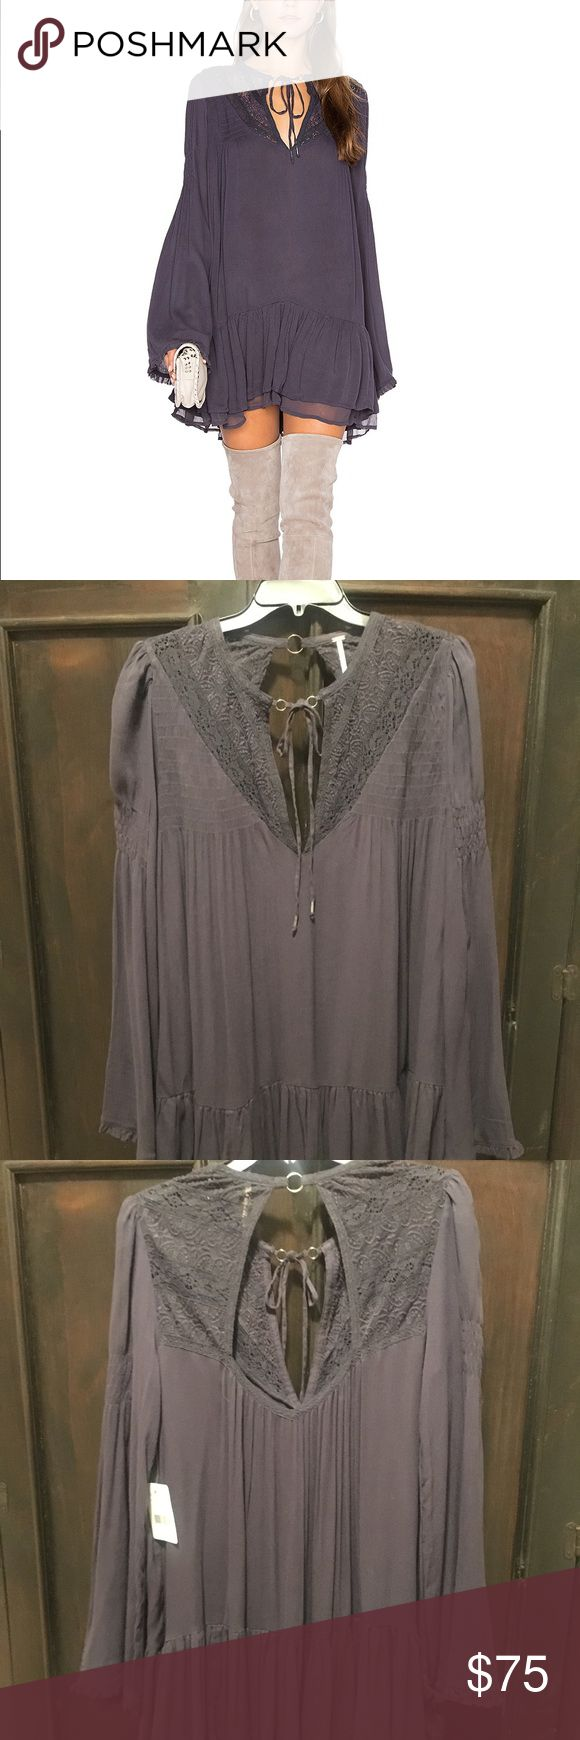 NWT Free People One Night Victorian Tunic/dress NWT Free People One Night Victorian tunic Dress in Smoke size XS $128 retail   Victorian-inspired tunic. Features a semi-sheer fabric with pretty crochet and lace details around the open neckline. Front beaded ties and back cutout with a small grommet detail. Sweet ruffled hem.   This versatile top can also be worn as a super mini dress. For a no-show look layer with one of our seamless shorts for an effortless look.  100% Rayon  Hand Wash Cold…